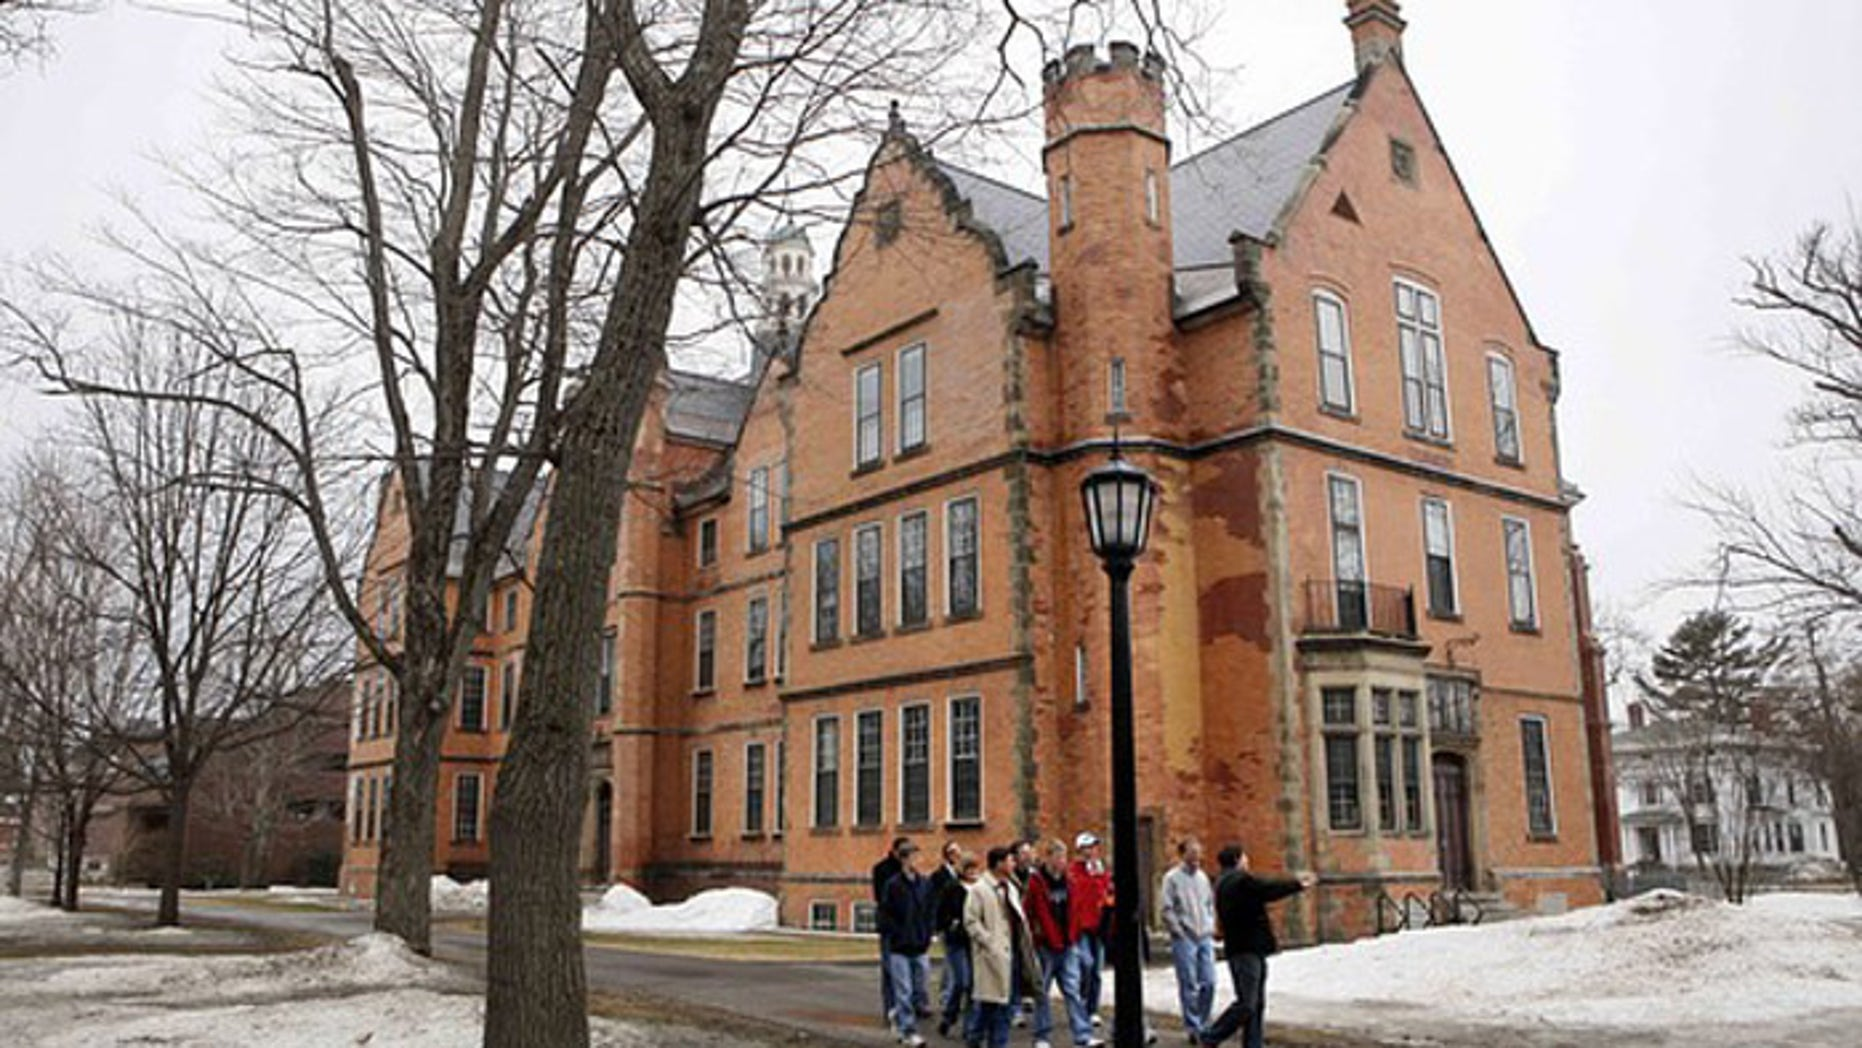 Prospective students and their parents tour the campus of Bowdoin College in Brunswick, Maine, in March 2009. (AP)